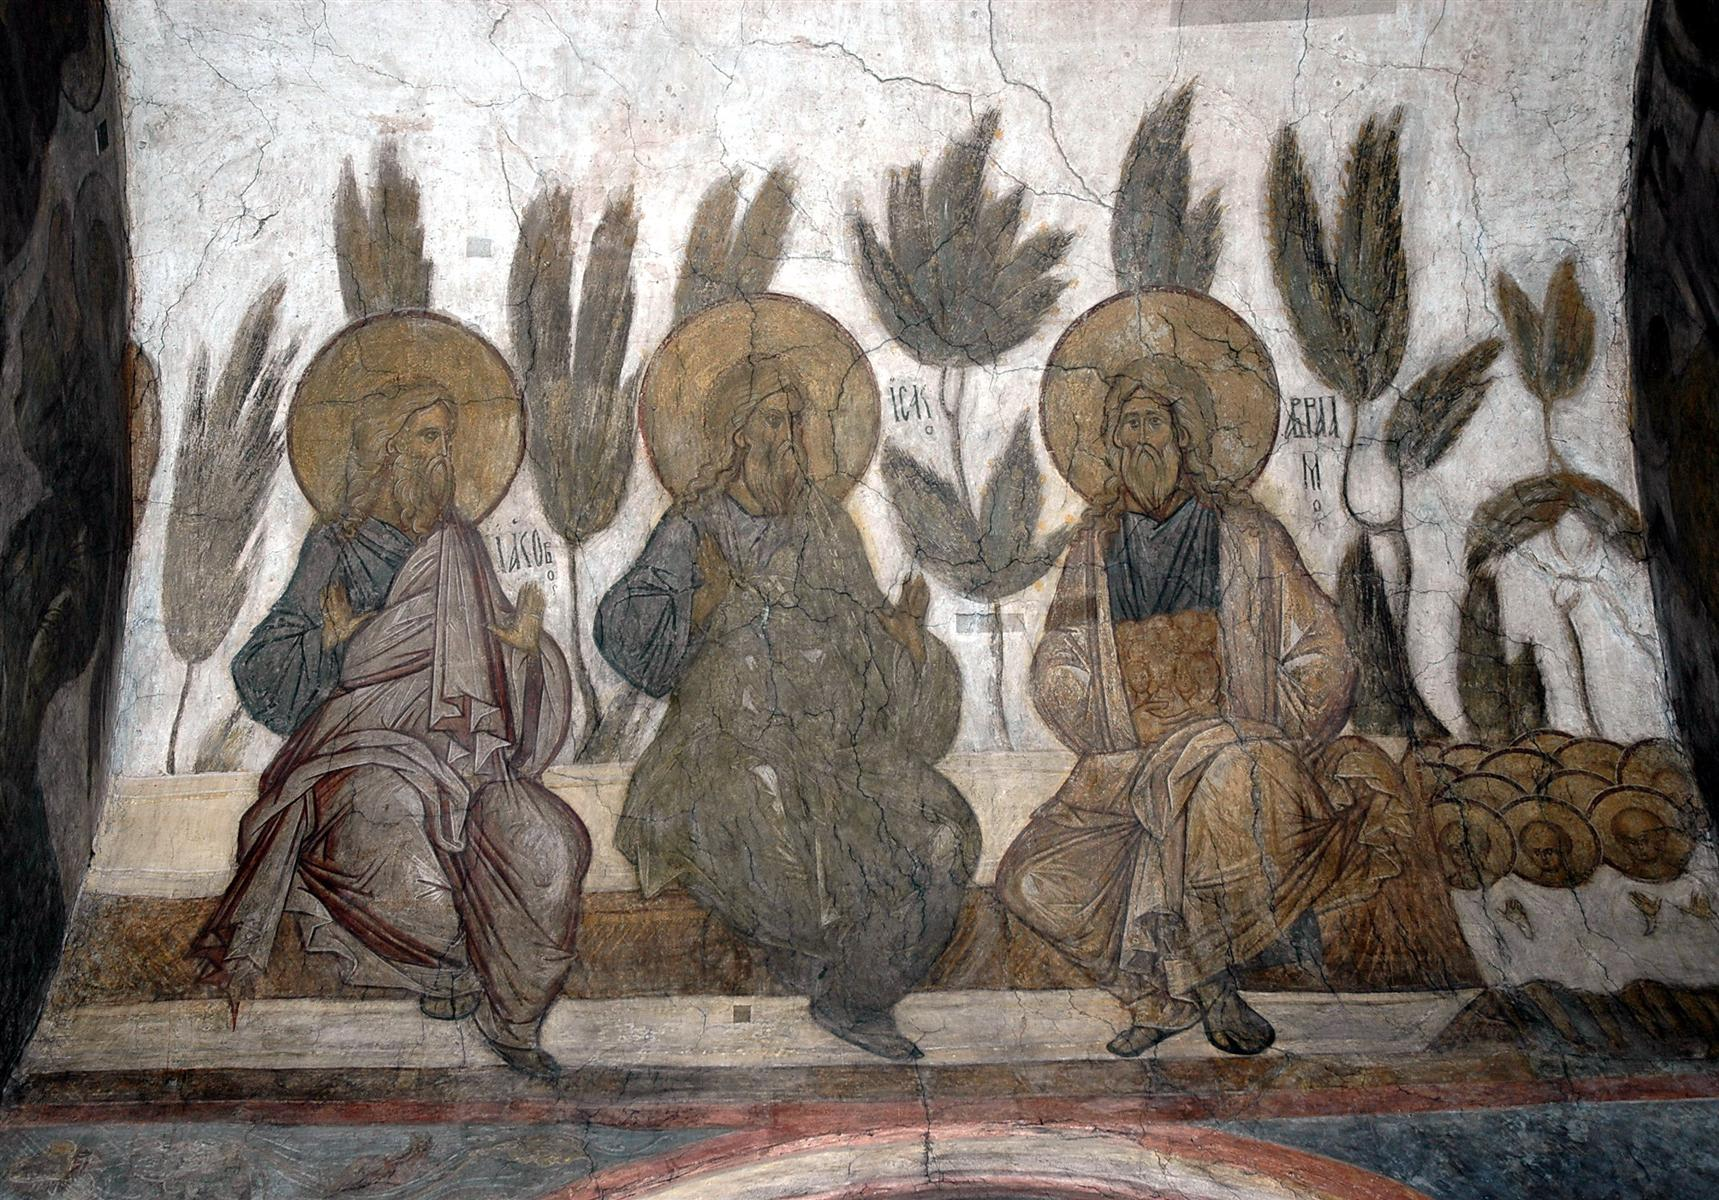 Jacob, Abraham, and Isaac - Andrei Rublev (Russian, 1408)